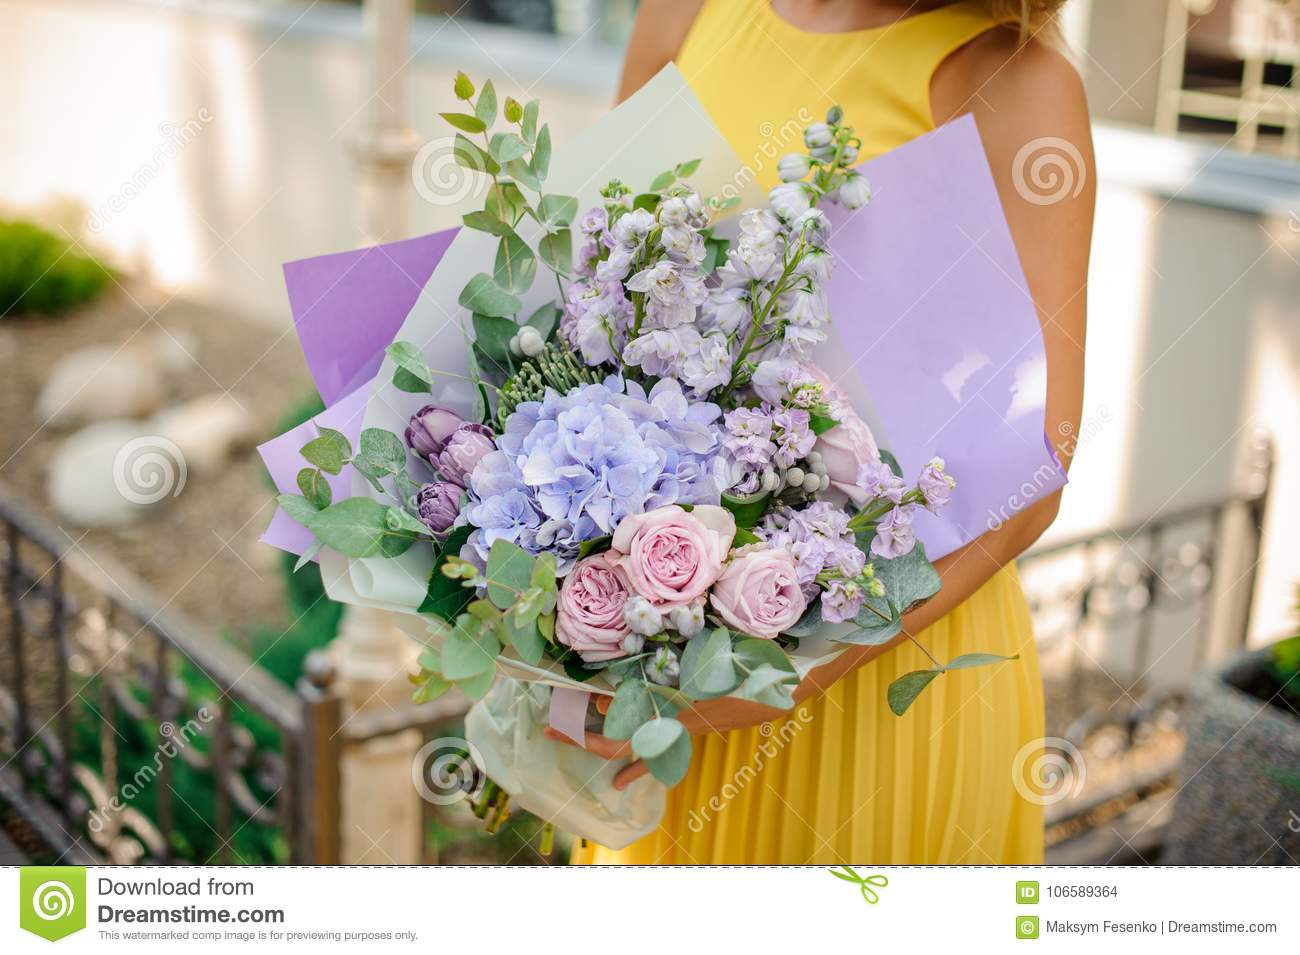 Girl dressed in a yellow dress holding a purple bouquet of flowers download girl dressed in a yellow dress holding a purple bouquet of flowers stock photo mightylinksfo